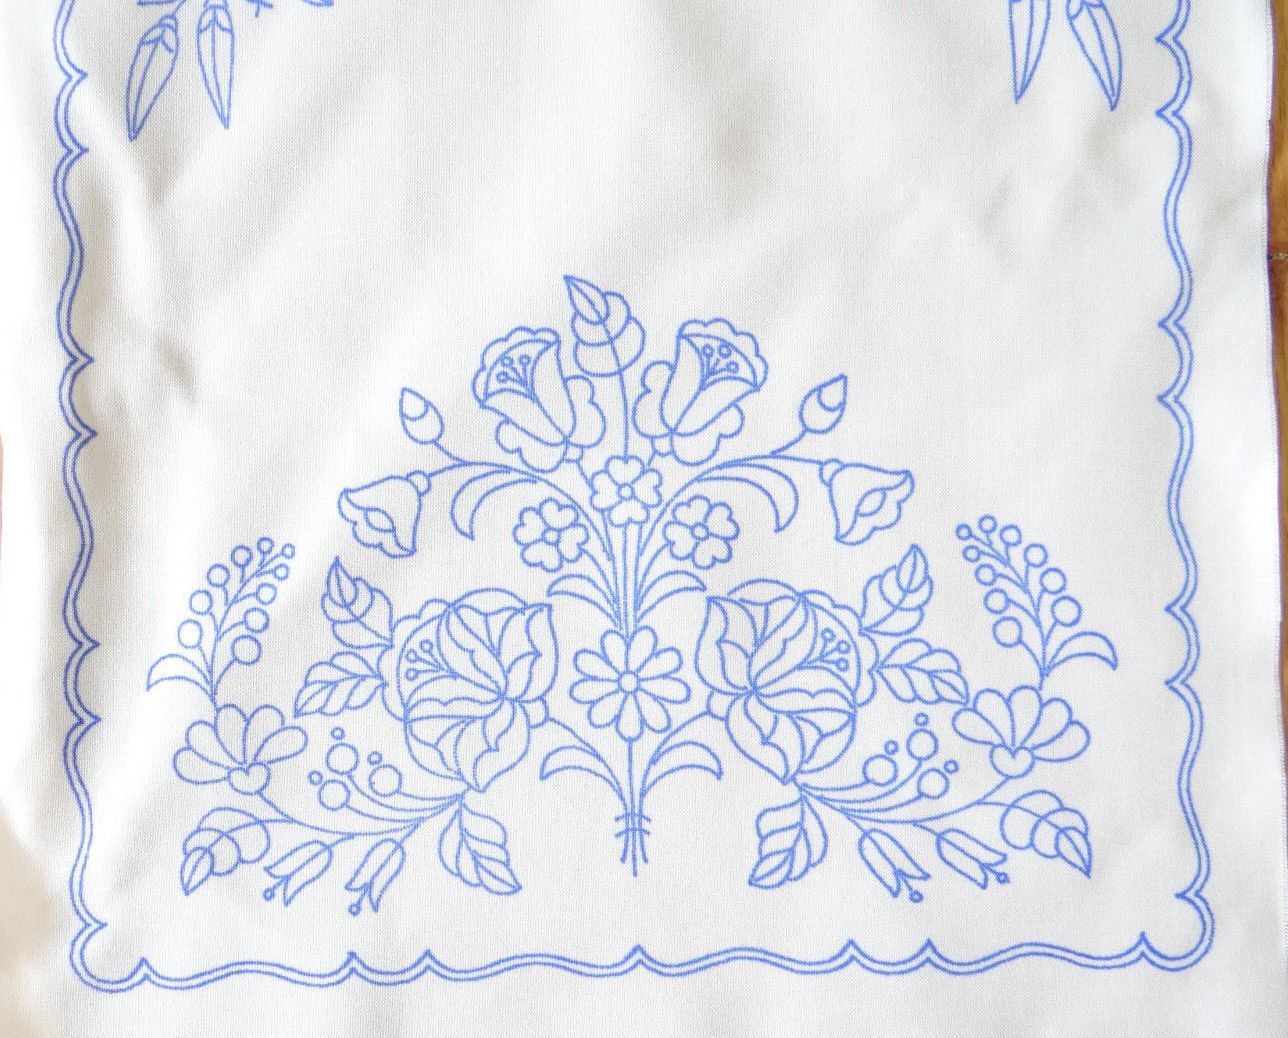 Outline embroidery designs for tablecloth - Embroidery Designs